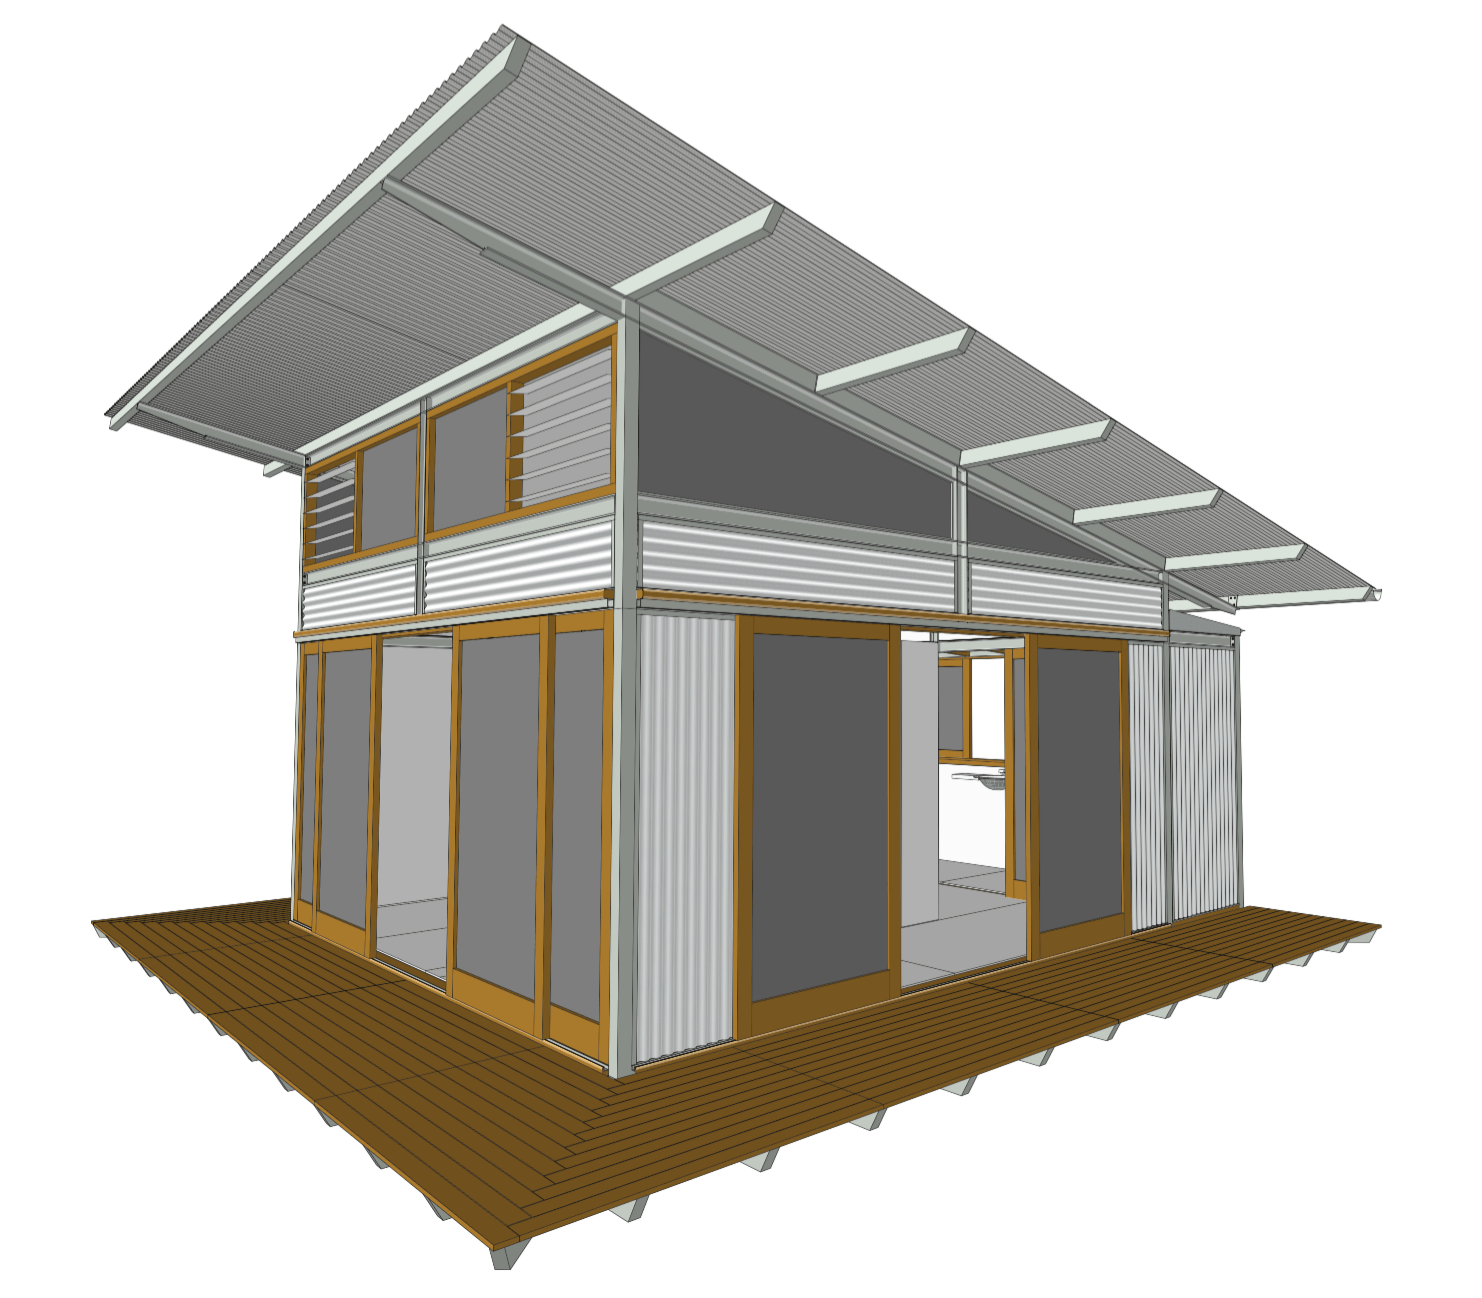 Designs ecoshelta for Single pitch roof design